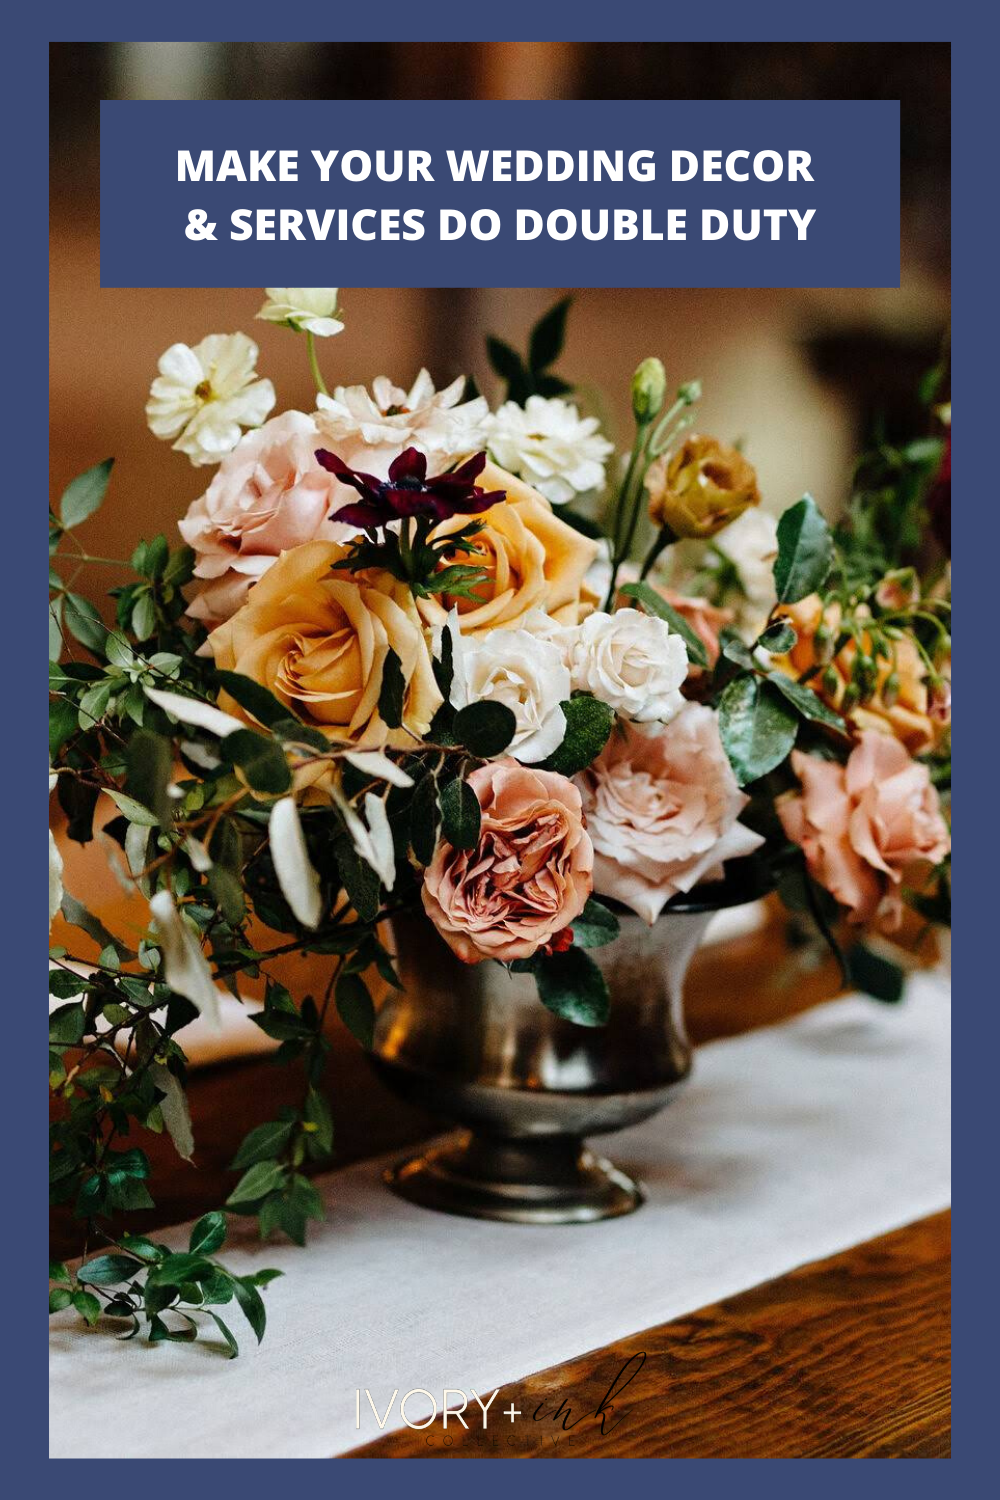 A great wedding budget tip is to make your decor & other hired services do double duty! originally published on ivoryandink.com